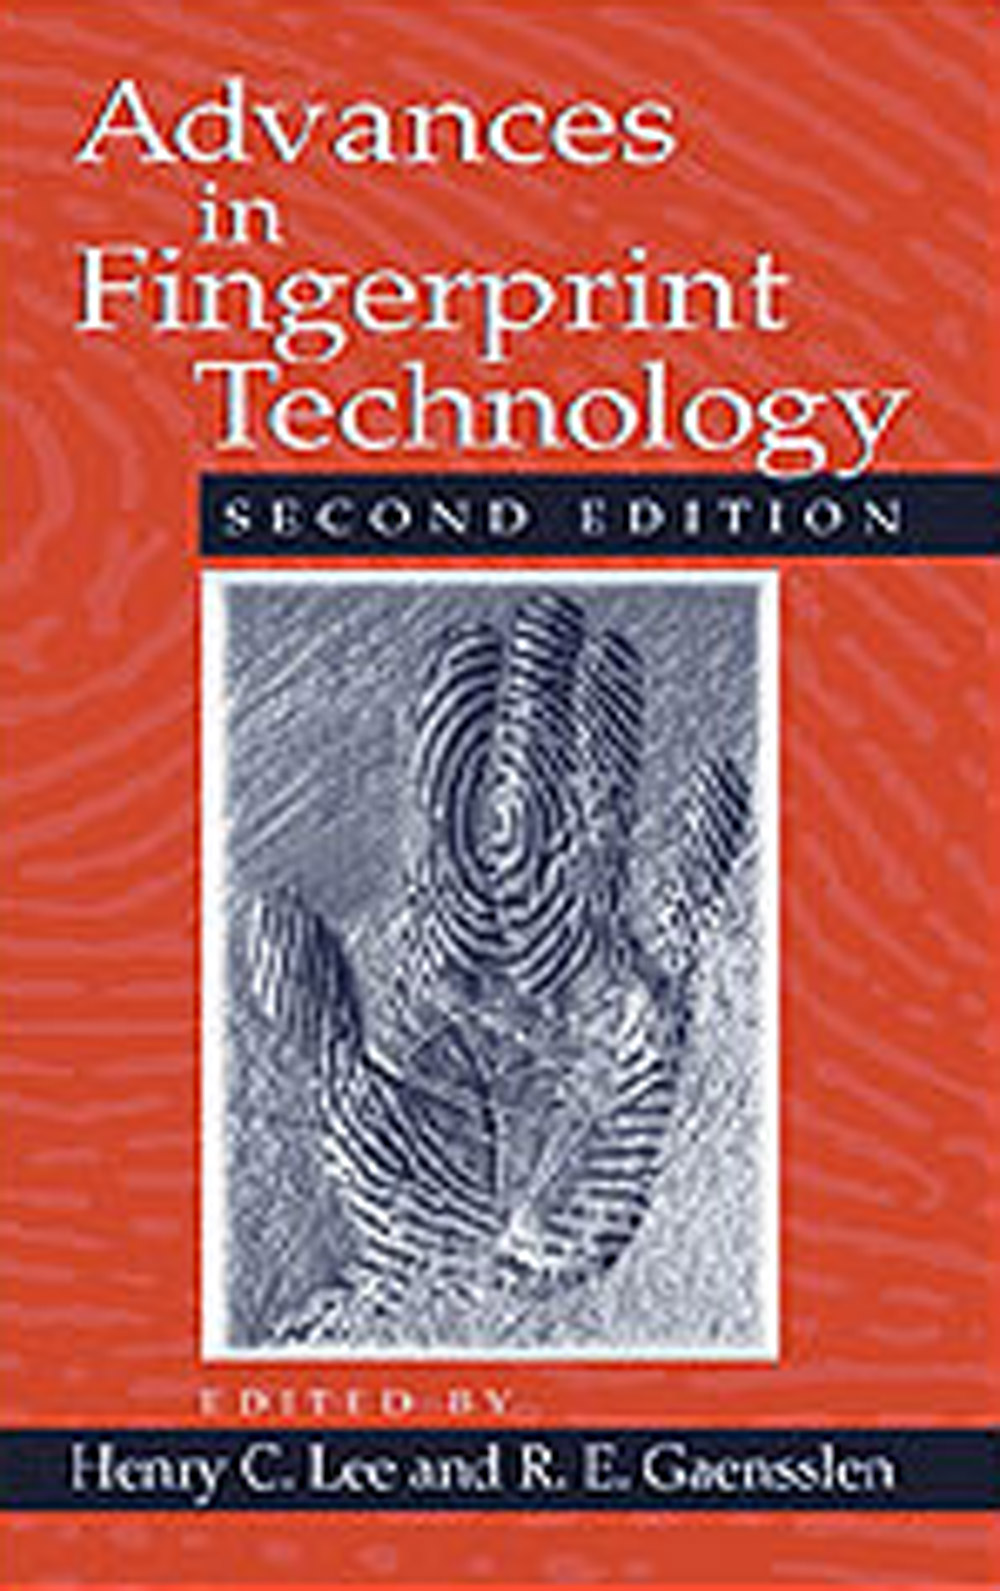 Advances In Fingerprint Technology Pi Magazine Trade Publication Cut Engineer Safety Boots Iron Fosil Leather Coklat For Private Investigatorspi